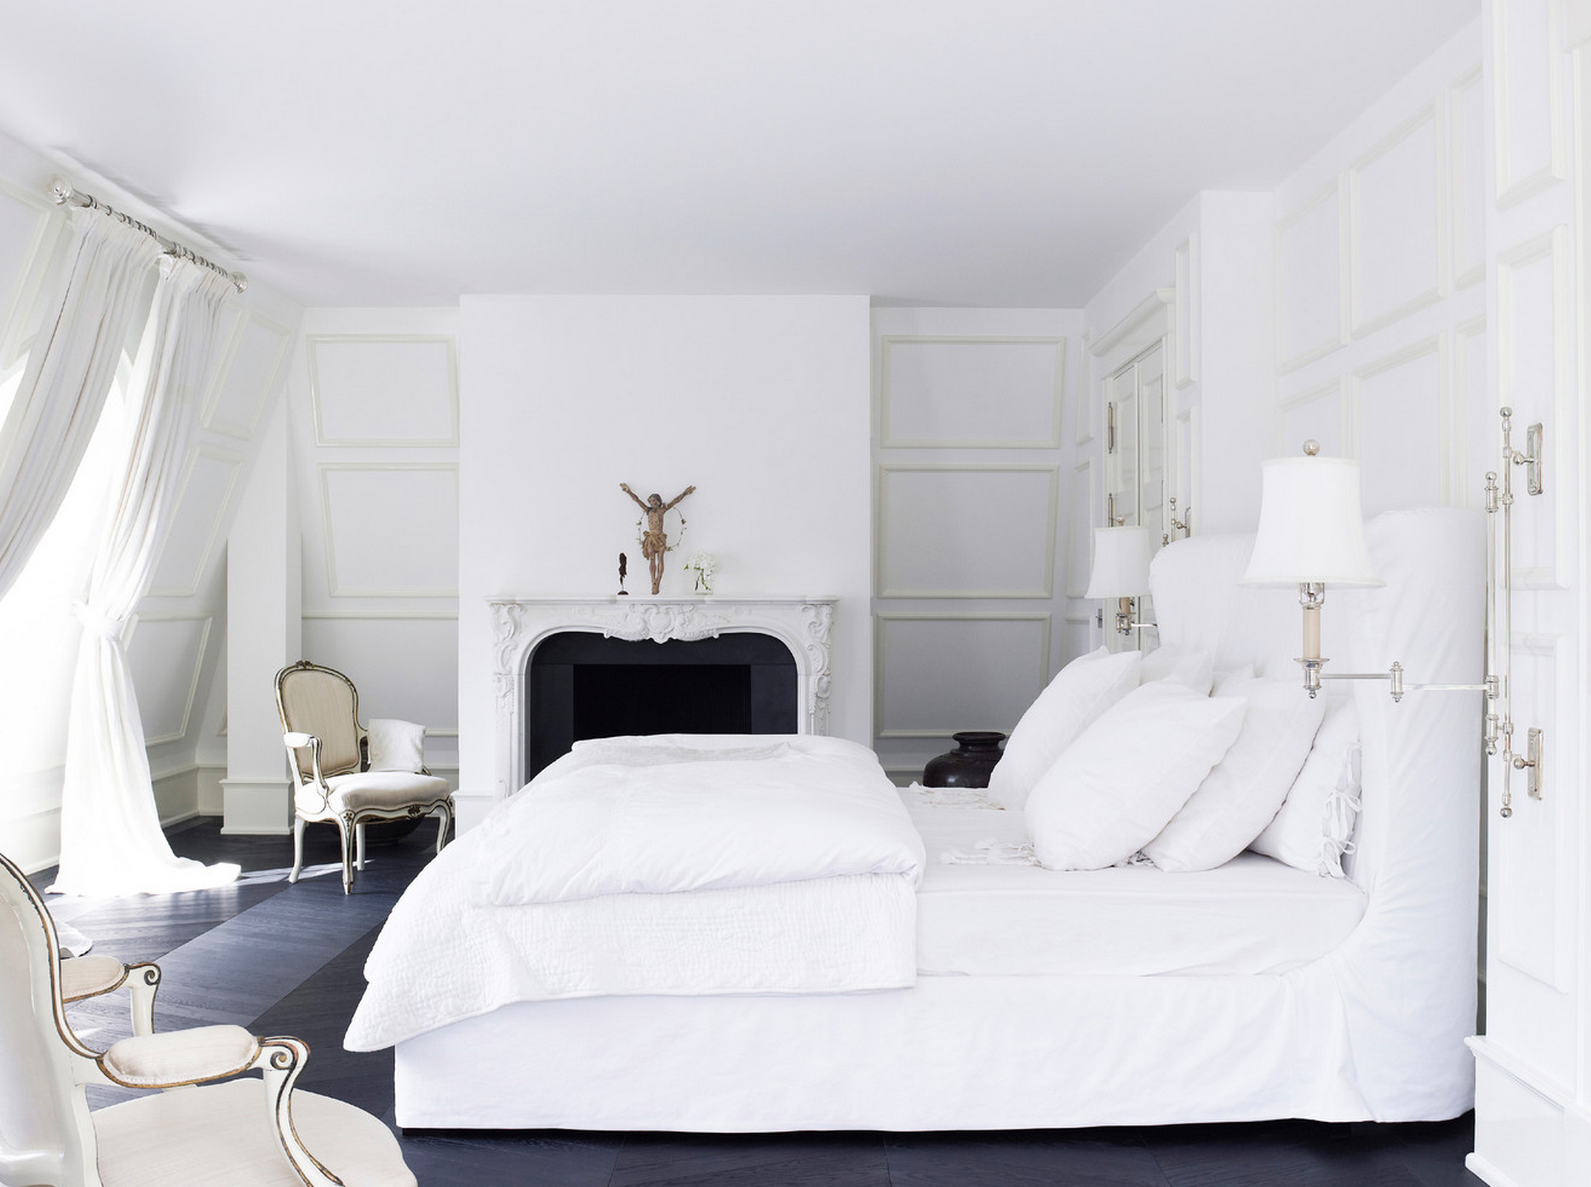 white bedroom ideas. White Bedroom Design Ideas Collection 41 Interior  Pictures